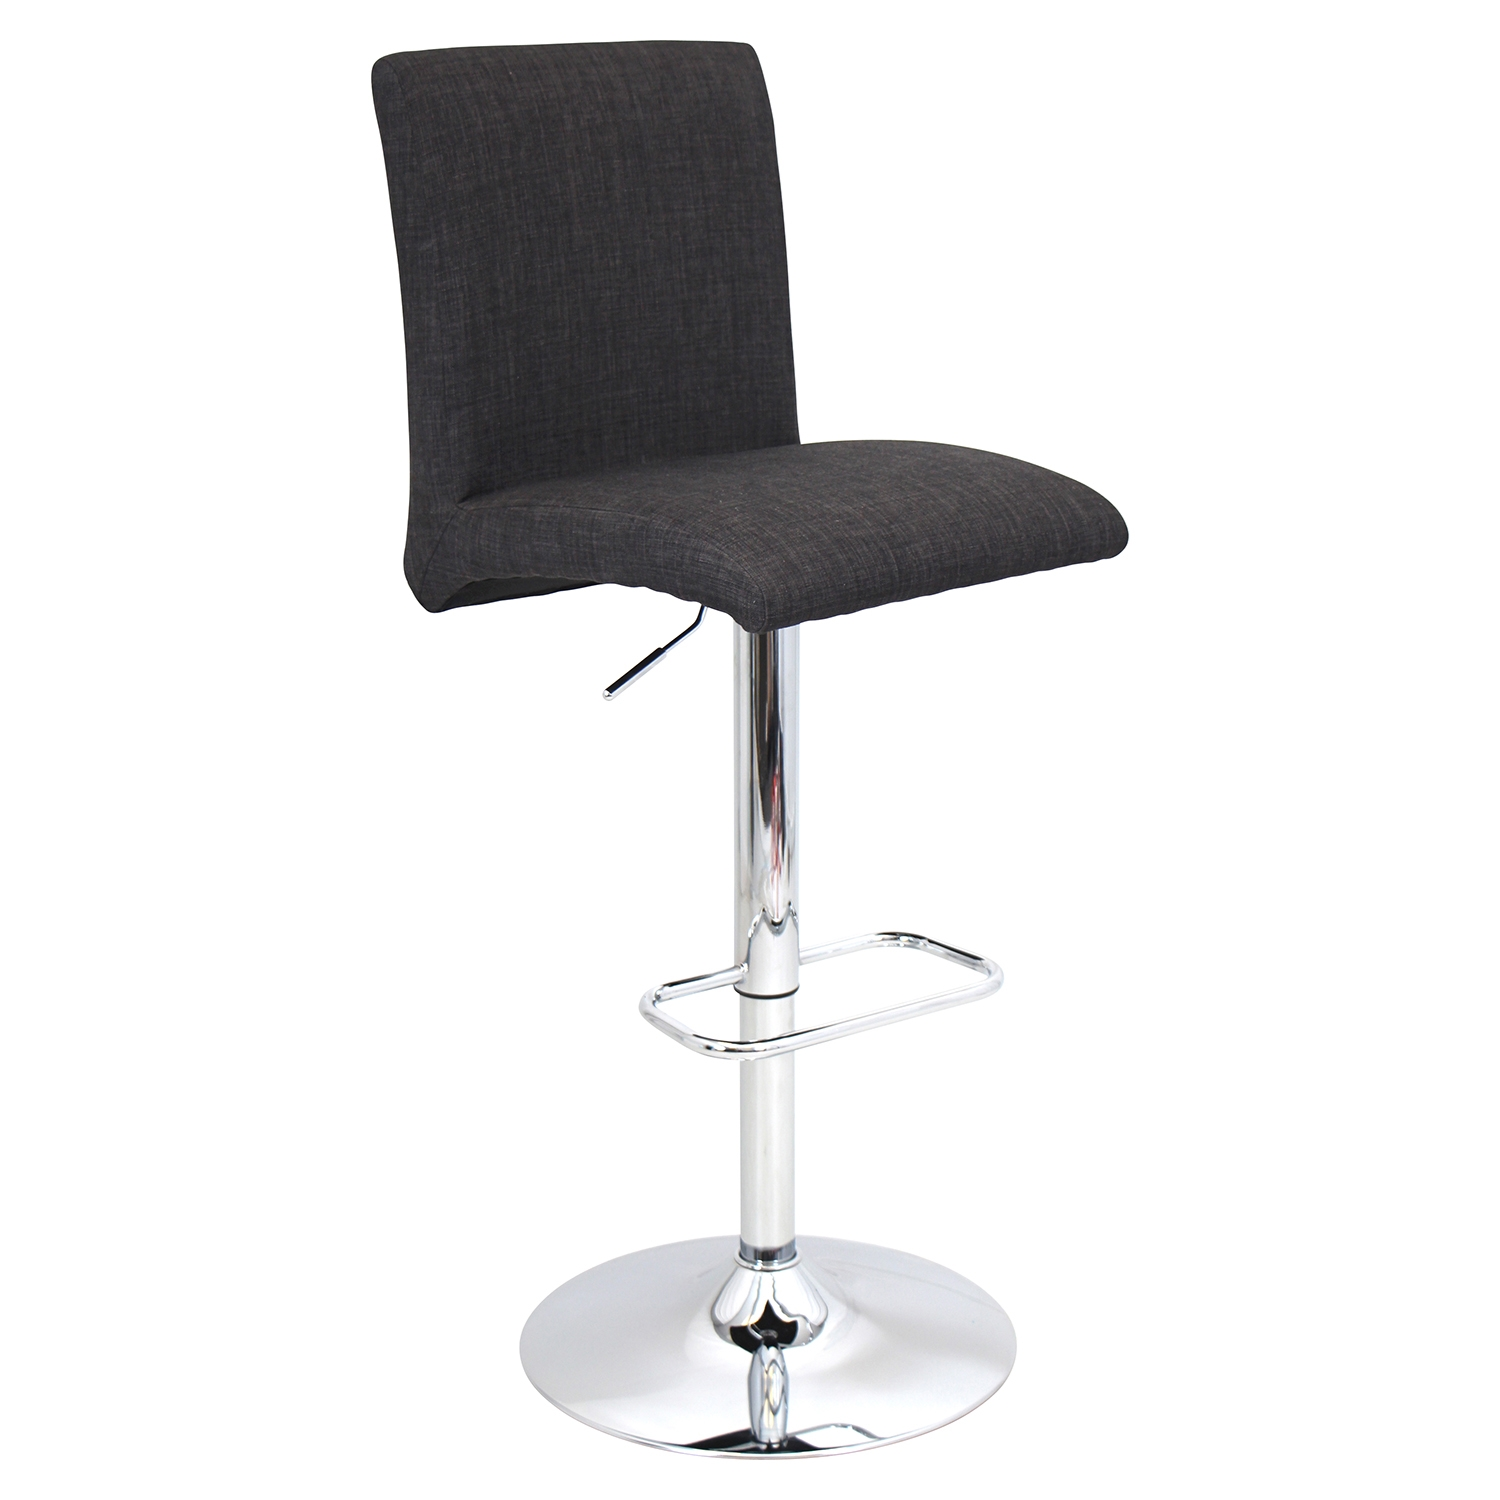 Tintori Height Adjustable Barstool - Swivel, Charcoal